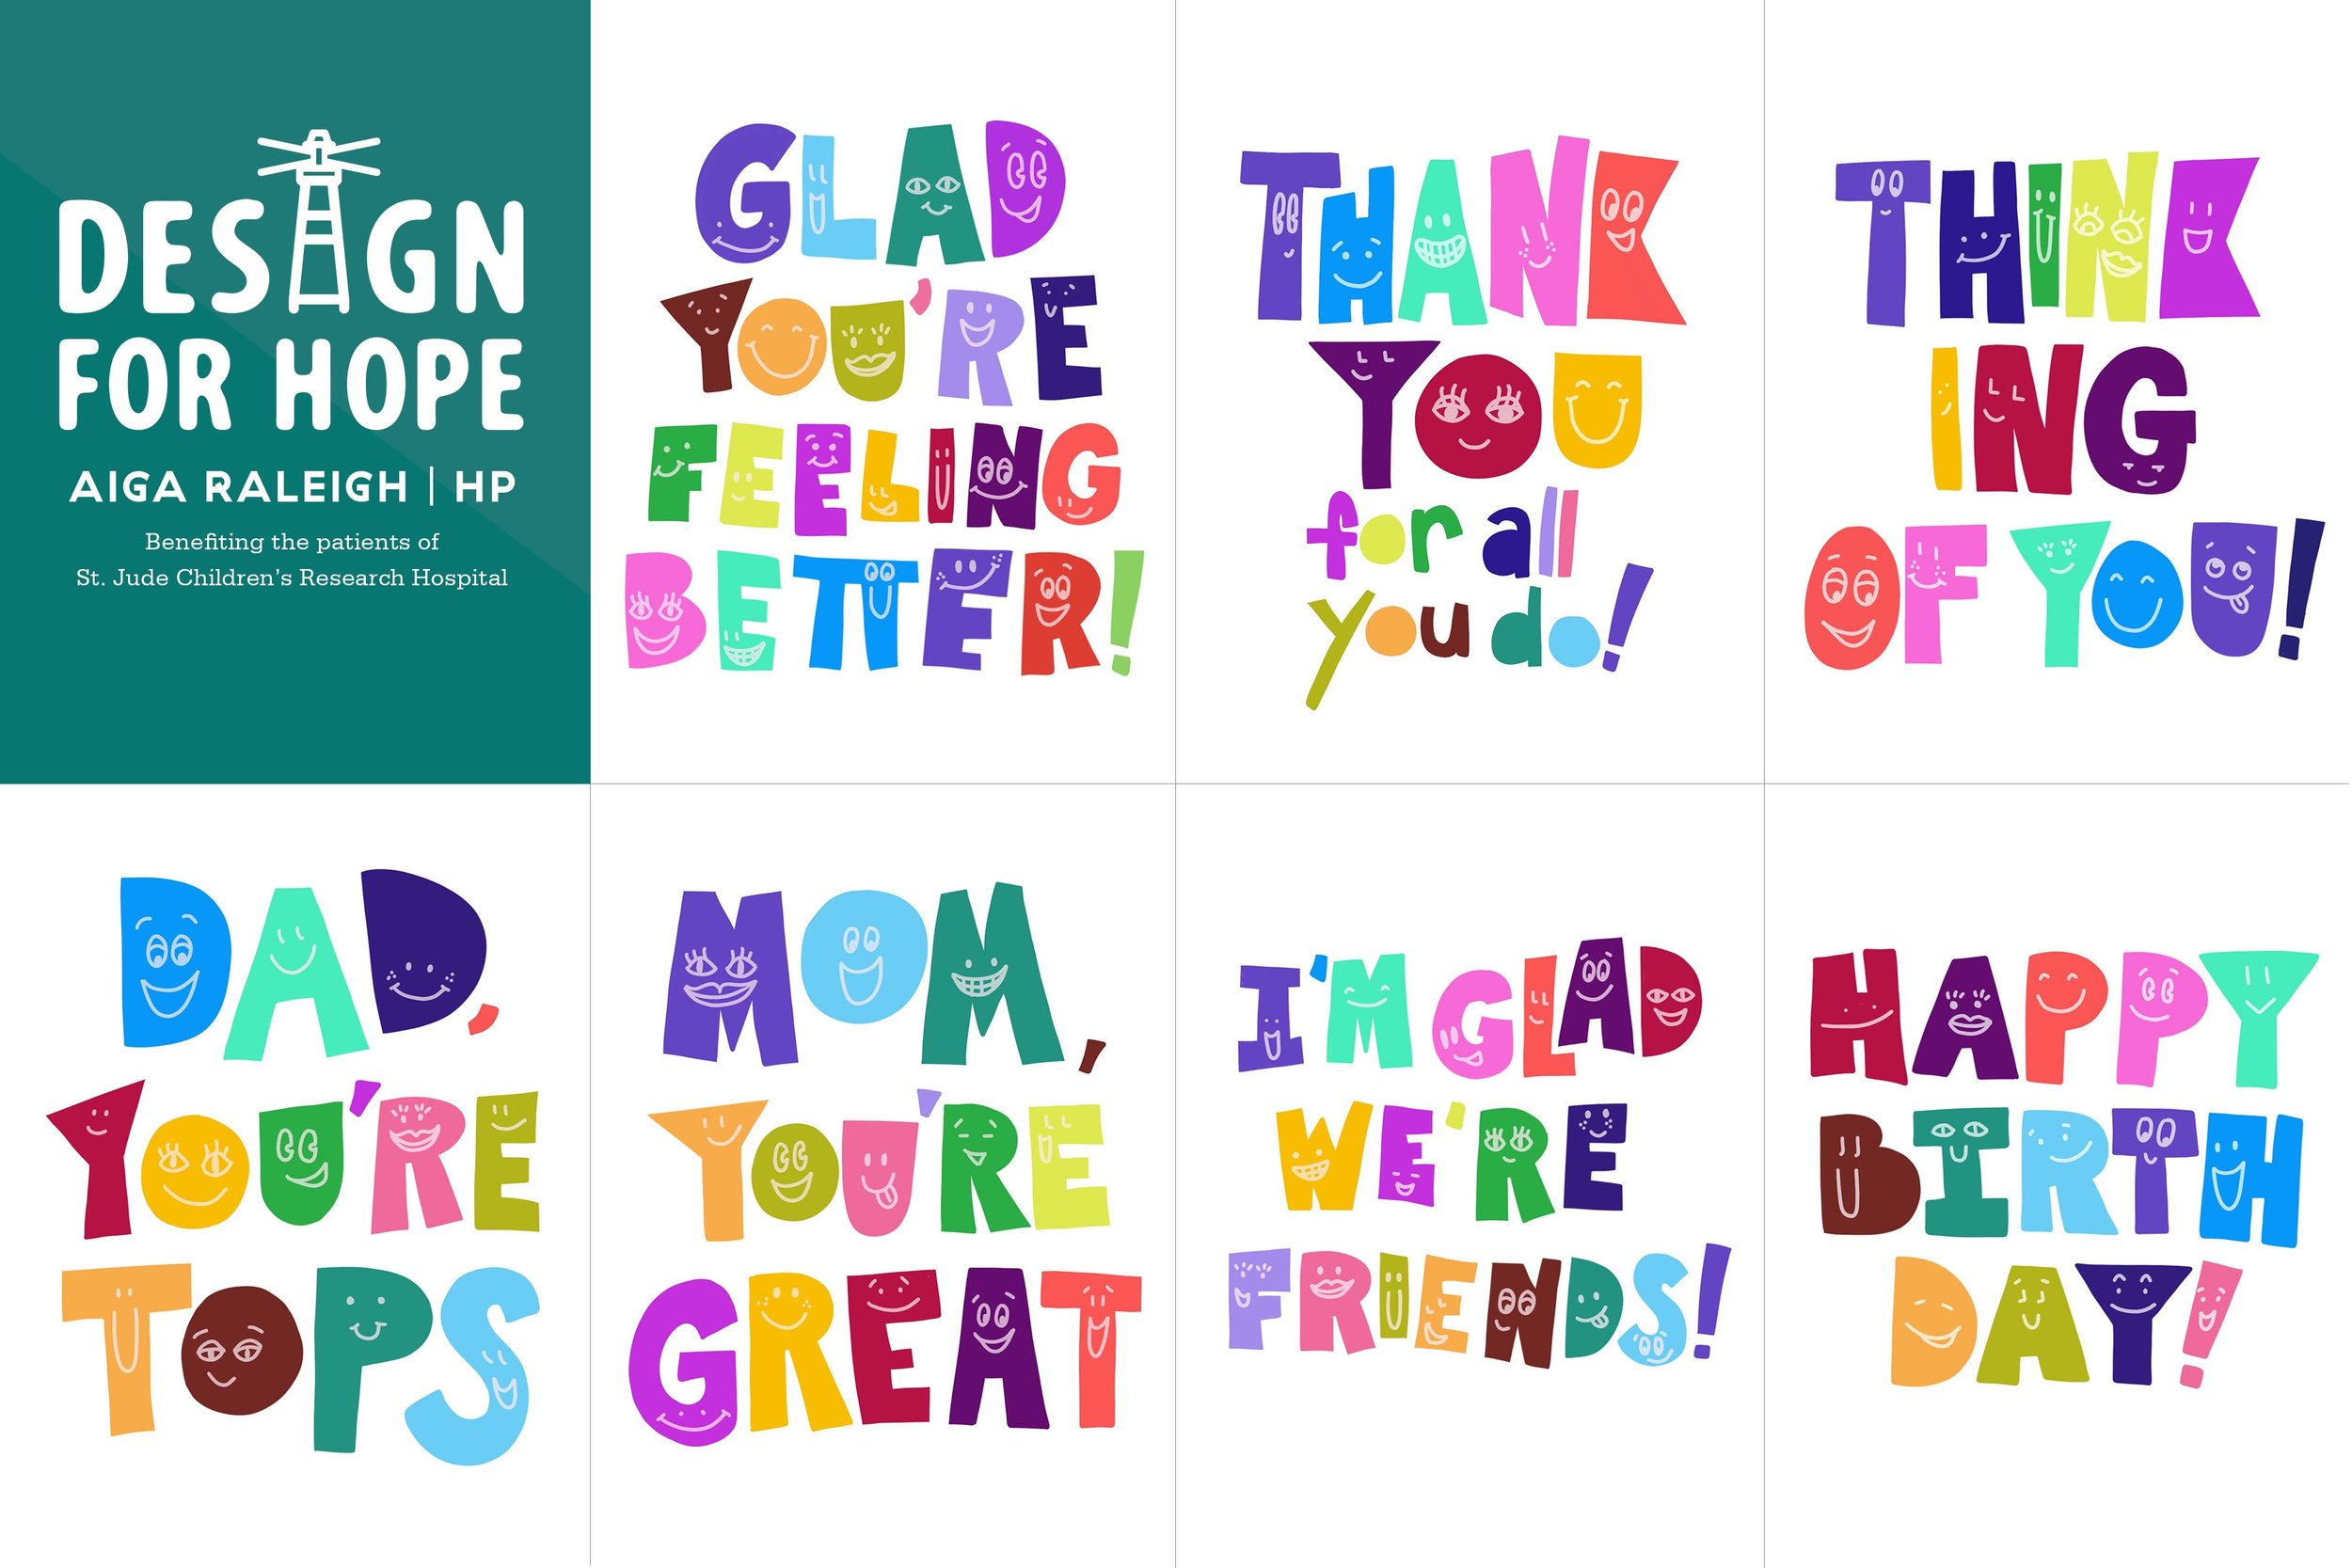 All seven greeting card designs in the set I designed, per the brief and in the spirit of appealing to children.